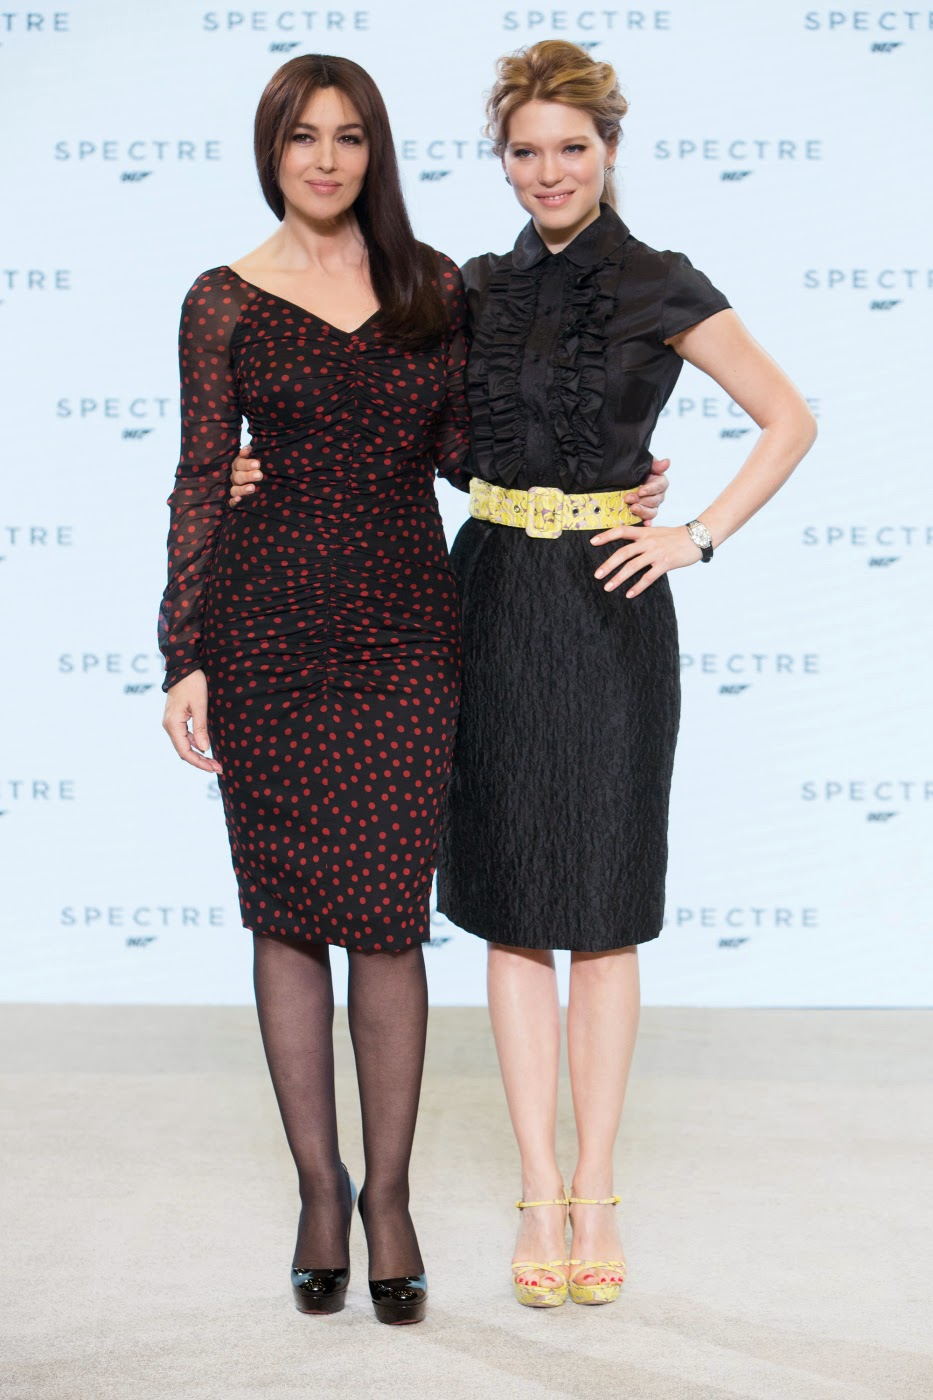 James Bond 007 SPECTRE: Monica Bellucci und Léa Seydoux